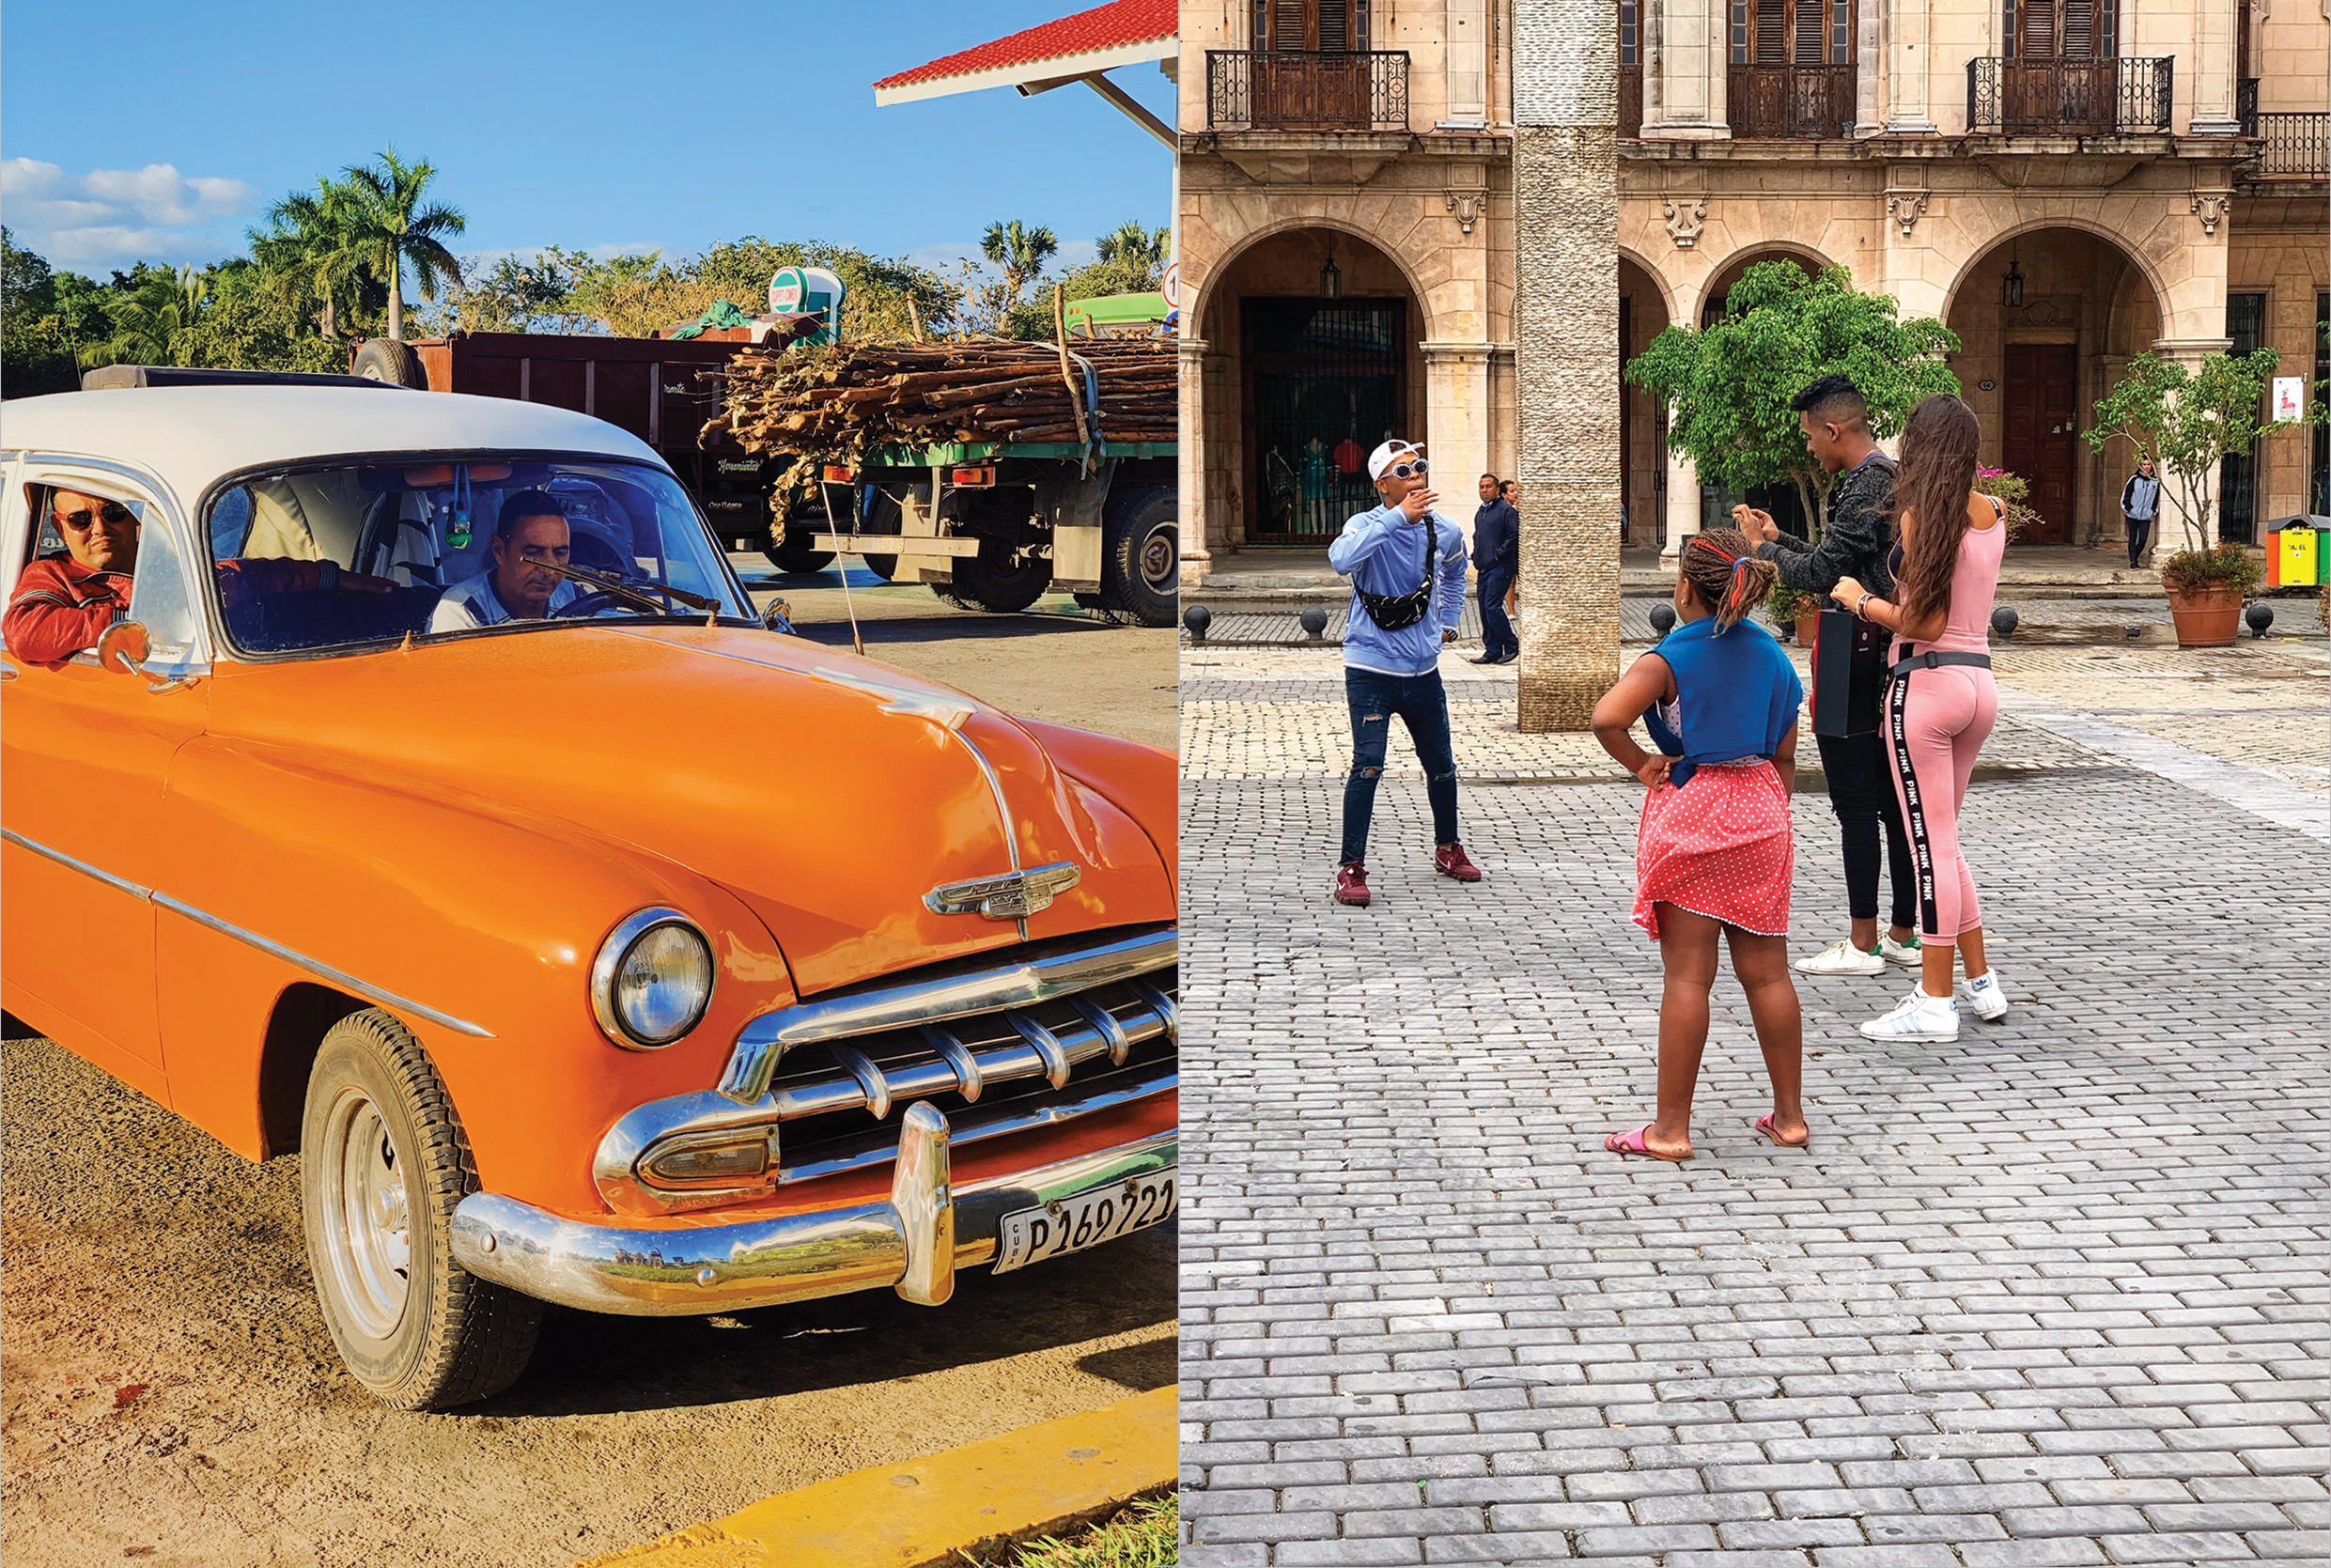 Local travelers in their classic Chevrolet at a gas-station in Viñales, juxtaposed with YouTubers making a video in the center of Old Havana.